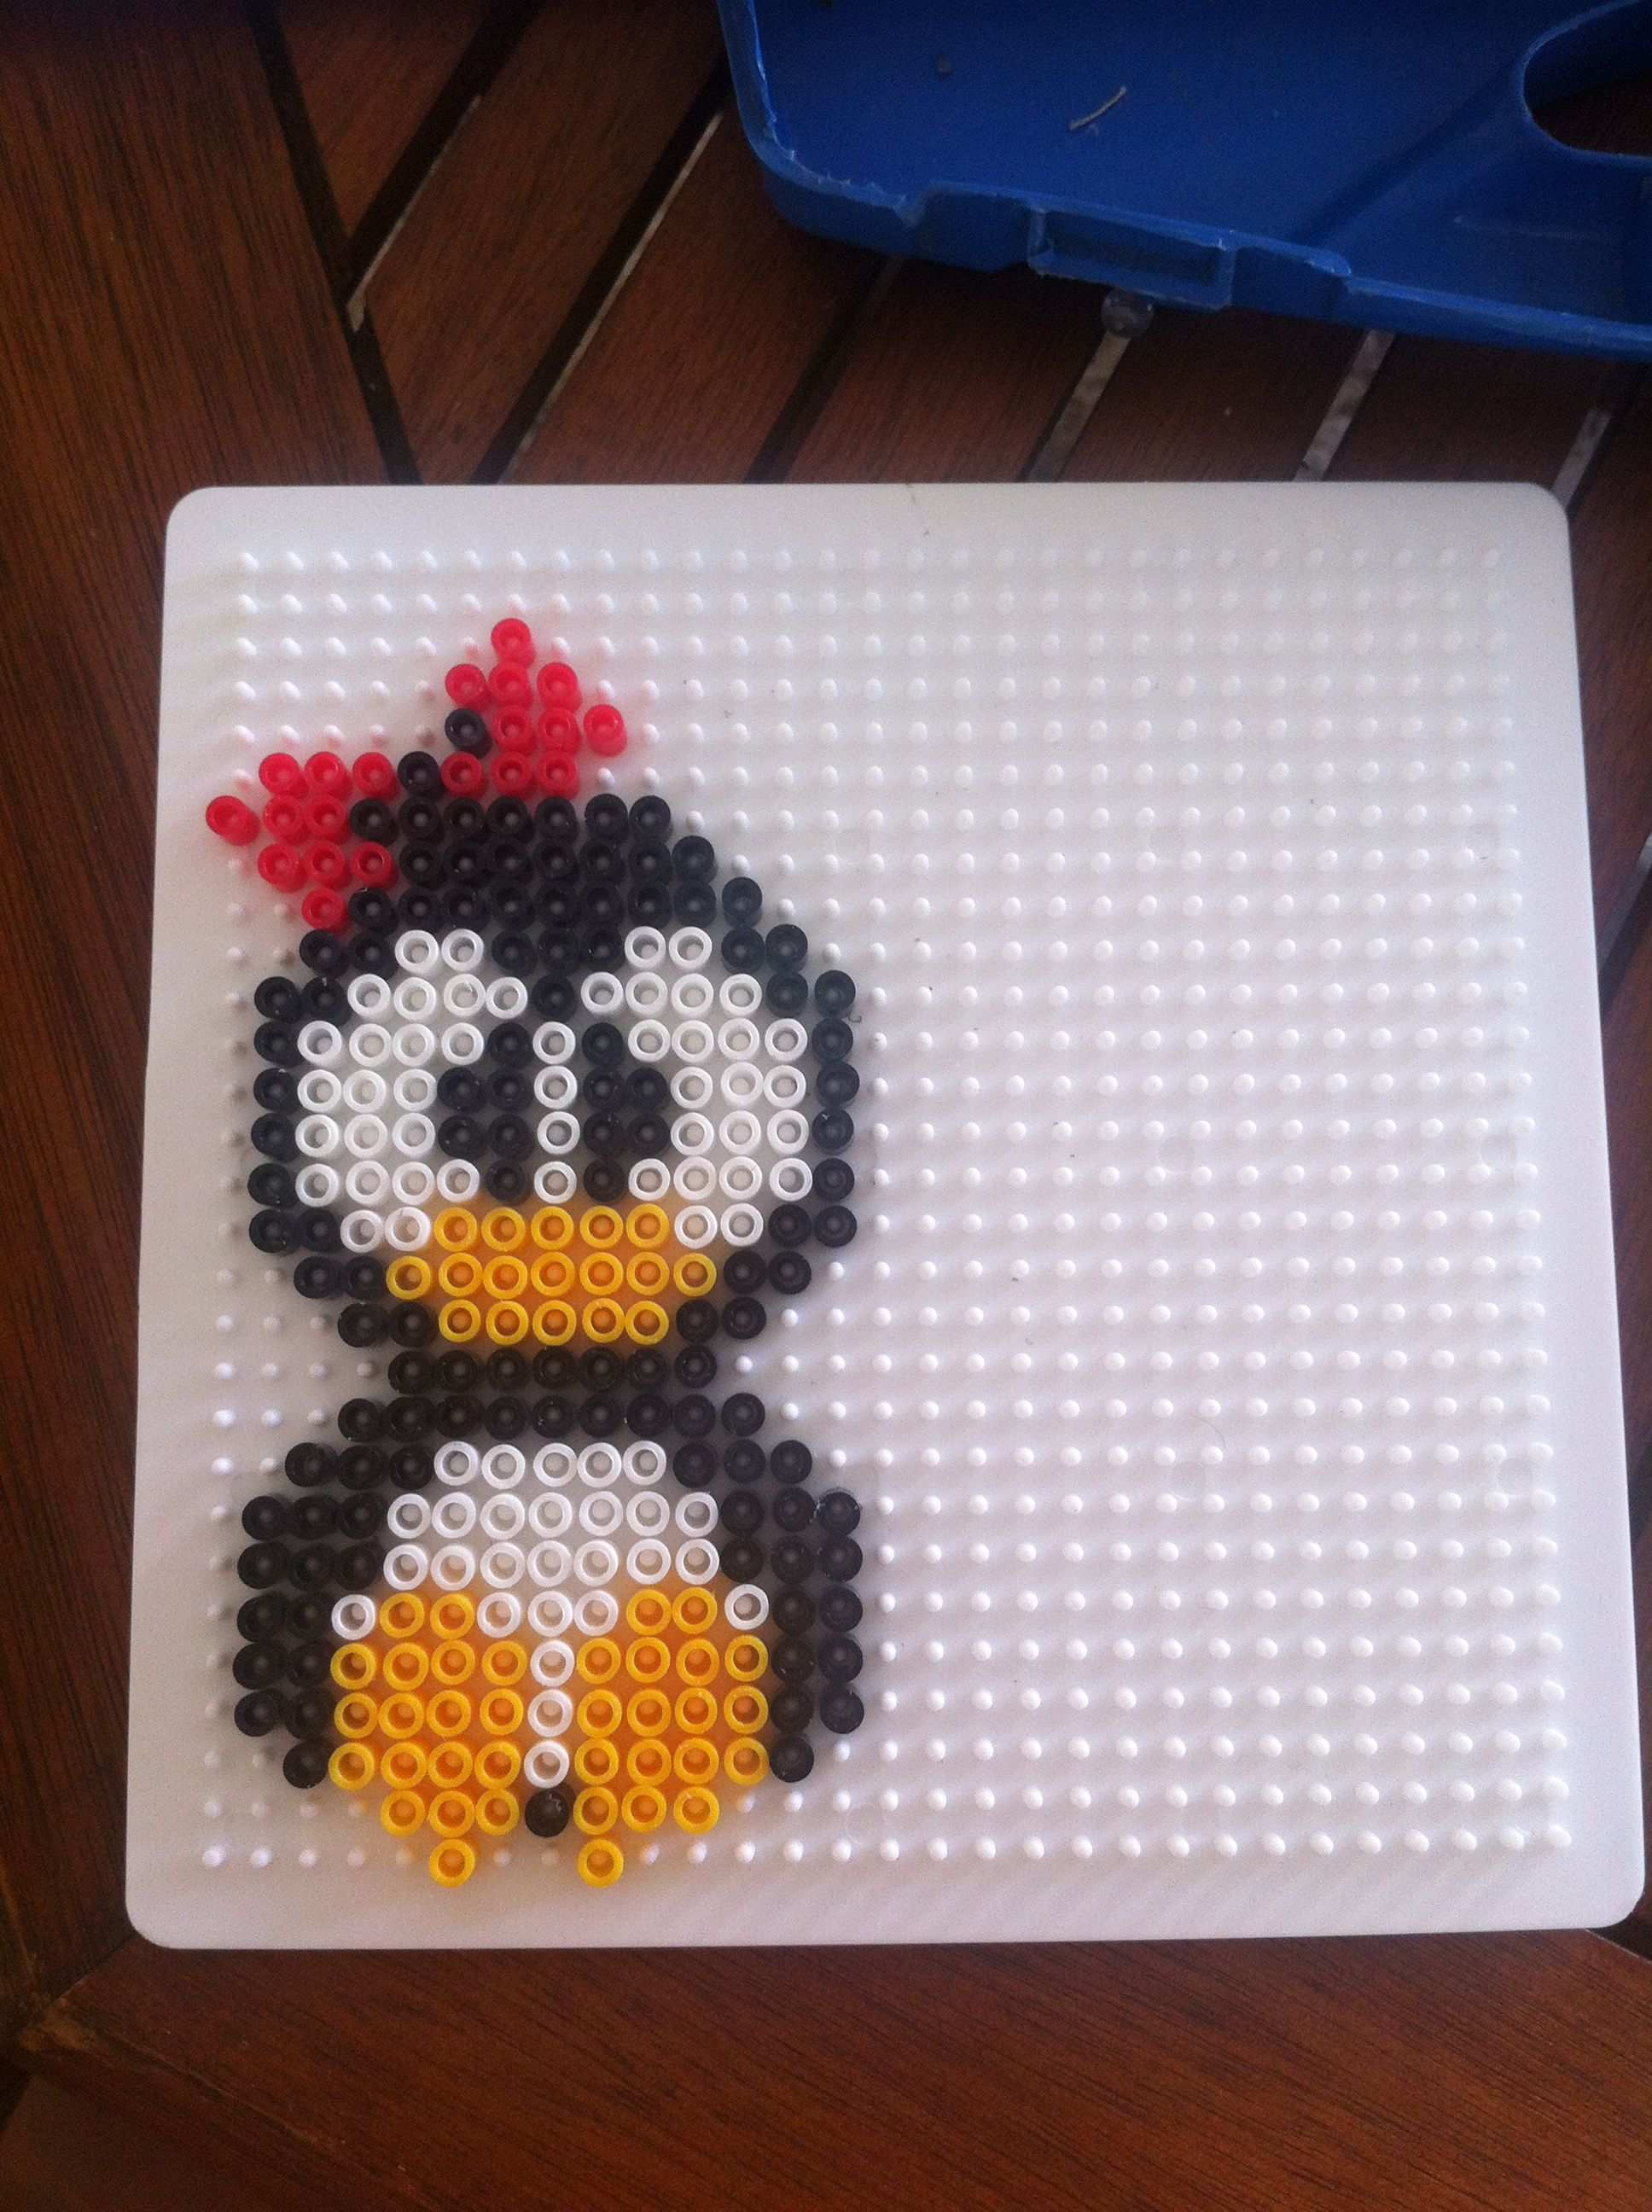 Little Miss Pinguin That I Have Made Hama Beads Bugelperlen Hama Bugelperlen Bugelperlenbilder